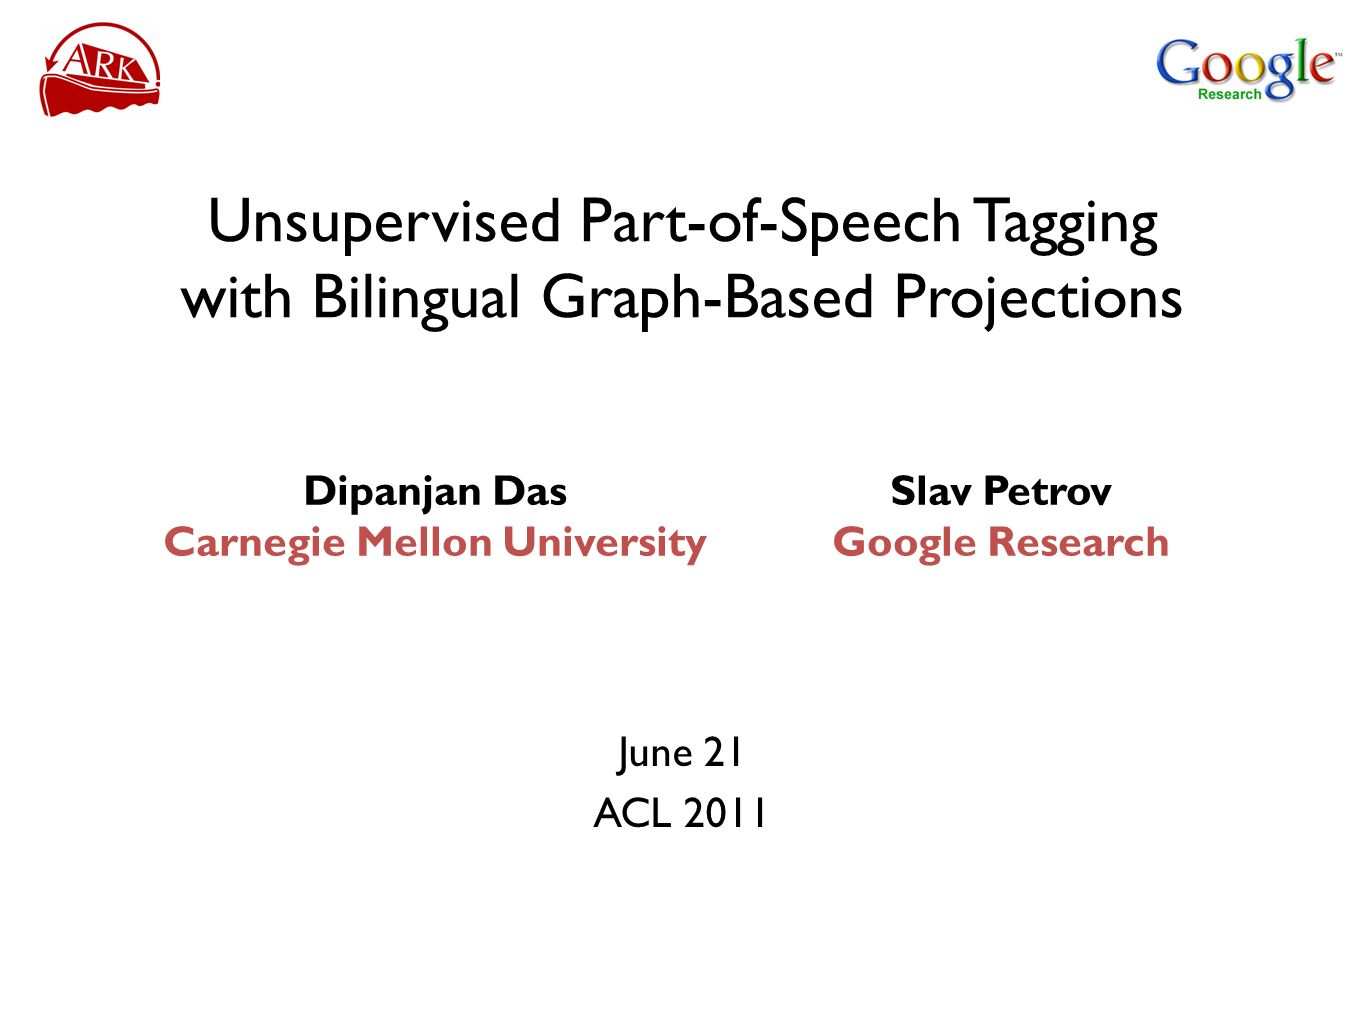 Unsupervised Part-of-Speech Tagging with Bilingual Graph-Based Projections June 21 ACL 2011 Slav Petrov Google Research Dipanjan Das Carnegie Mellon University